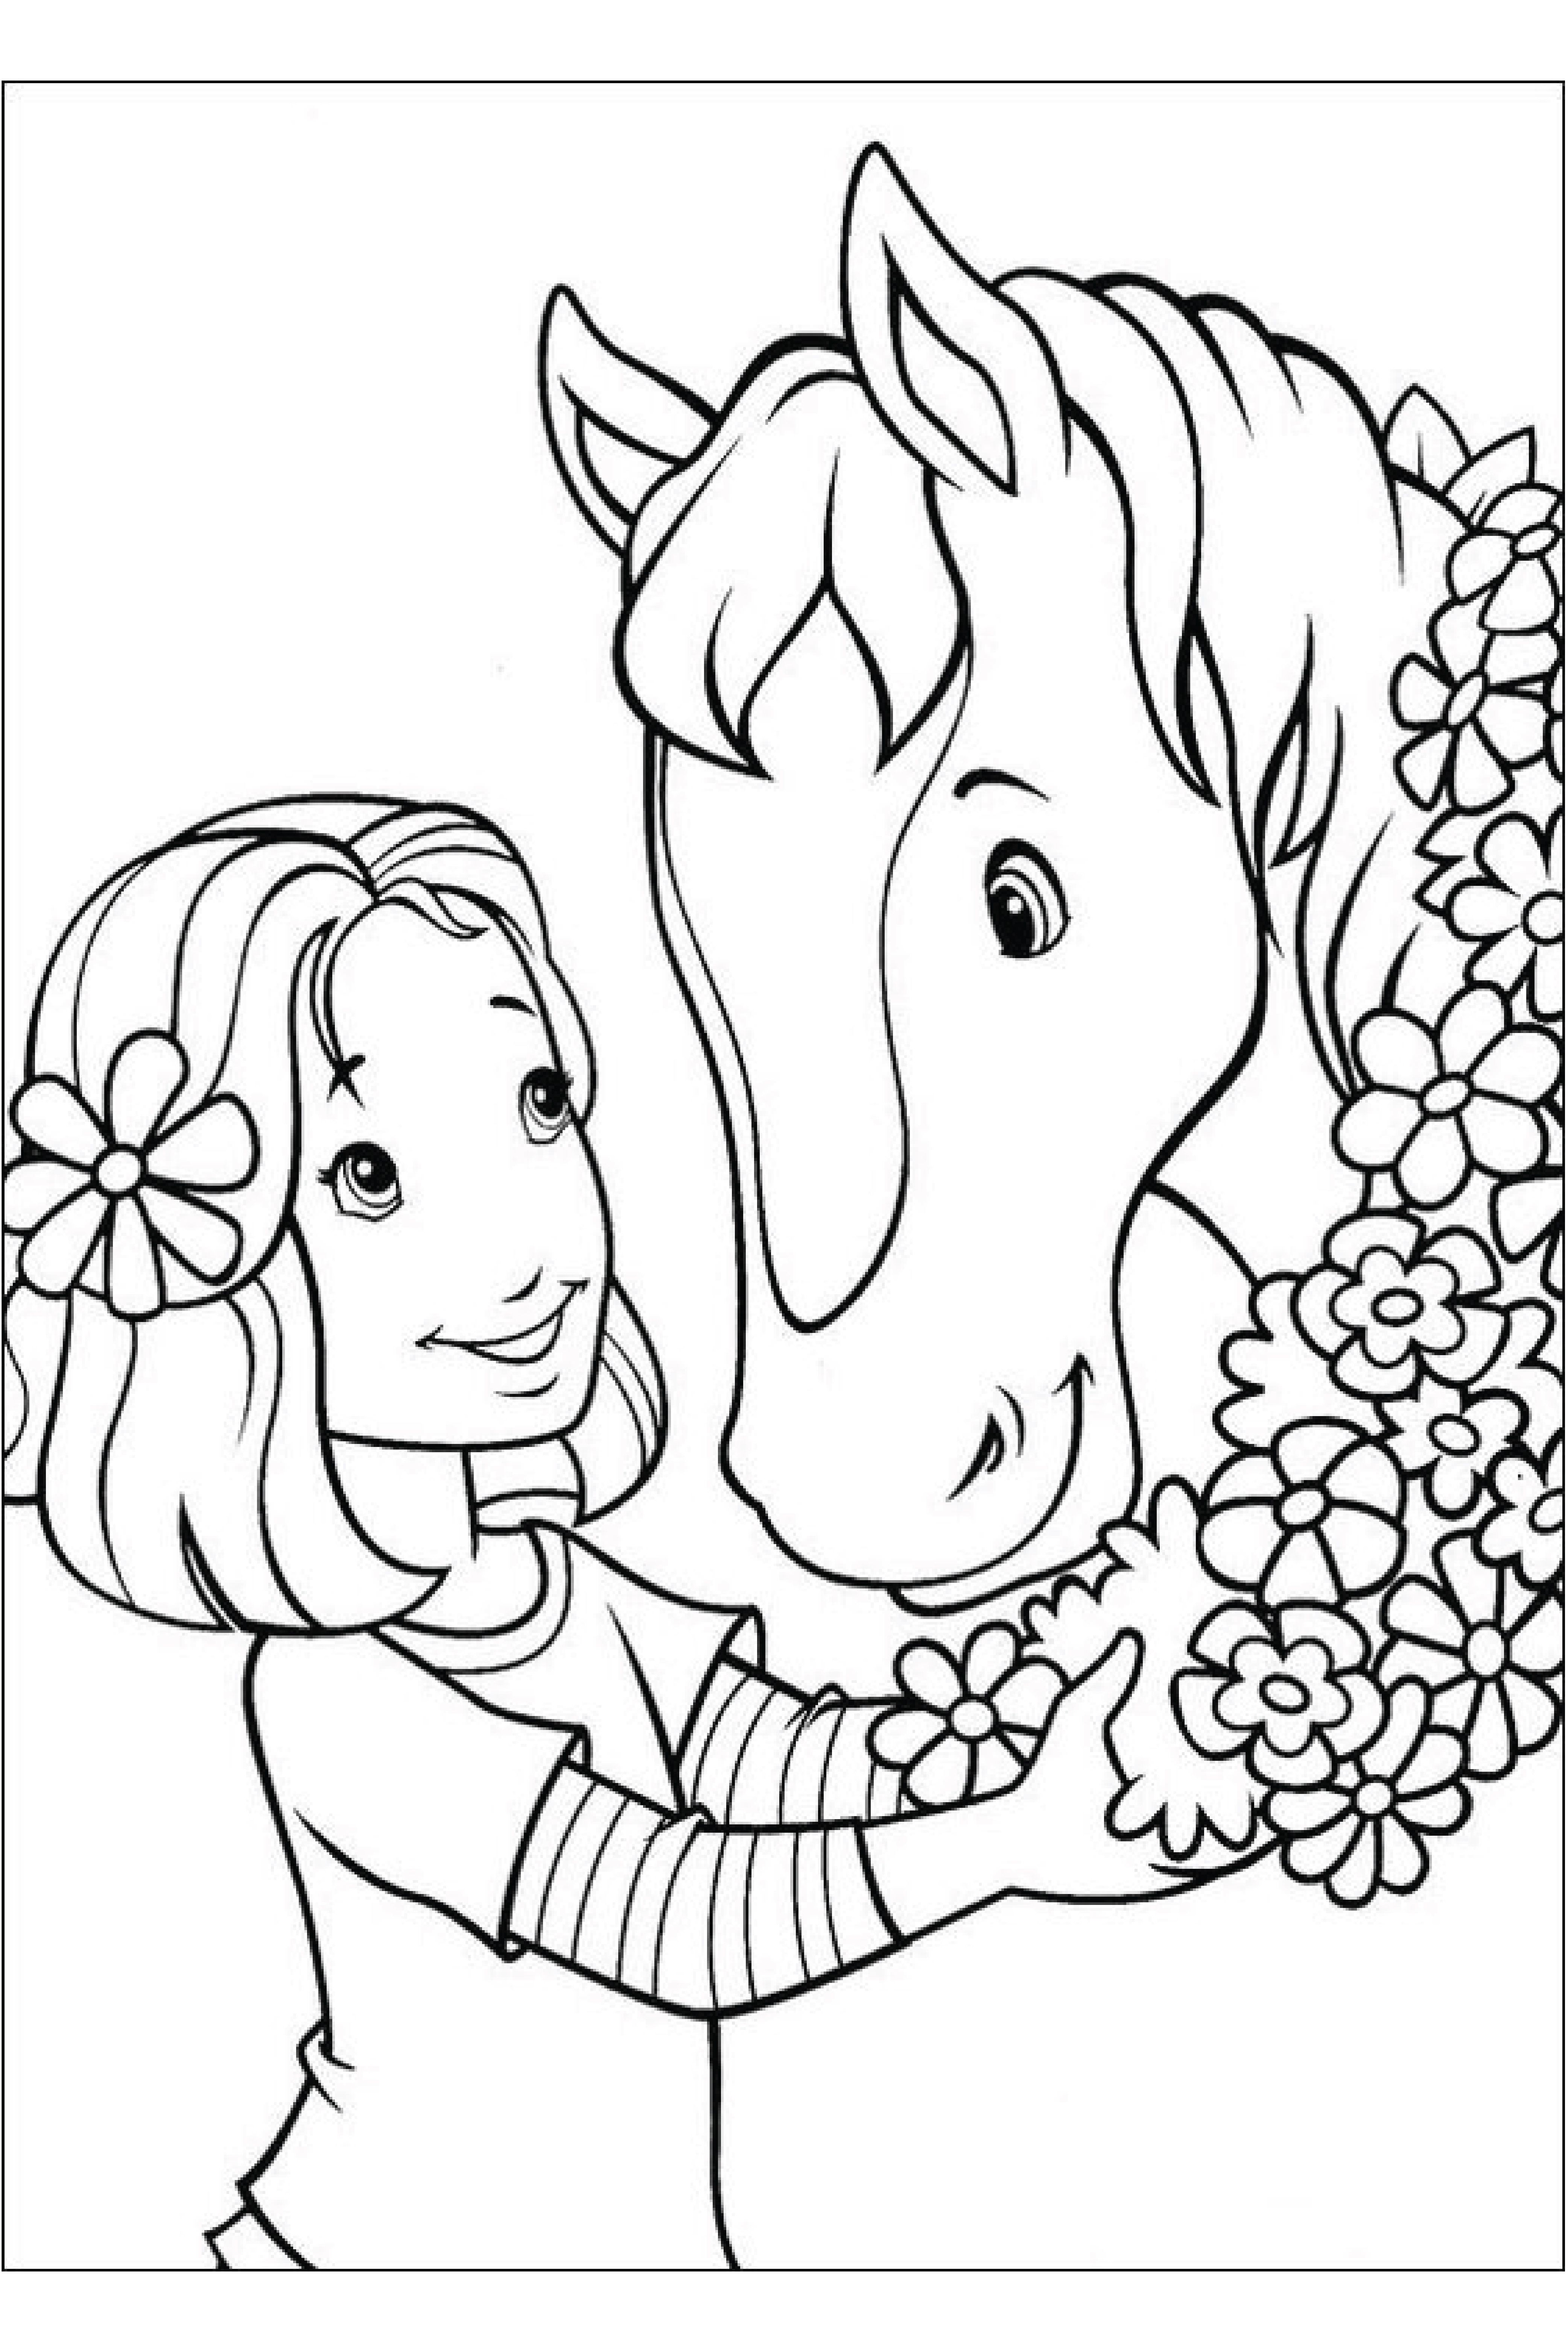 Kishor Artist I Will Make Black And White Coloring Page Illustration In 24 Hours For 5 On Fiverr Com In 2021 Horse Coloring Pages Coloring Book Pages Horse Coloring [ 6250 x 4167 Pixel ]